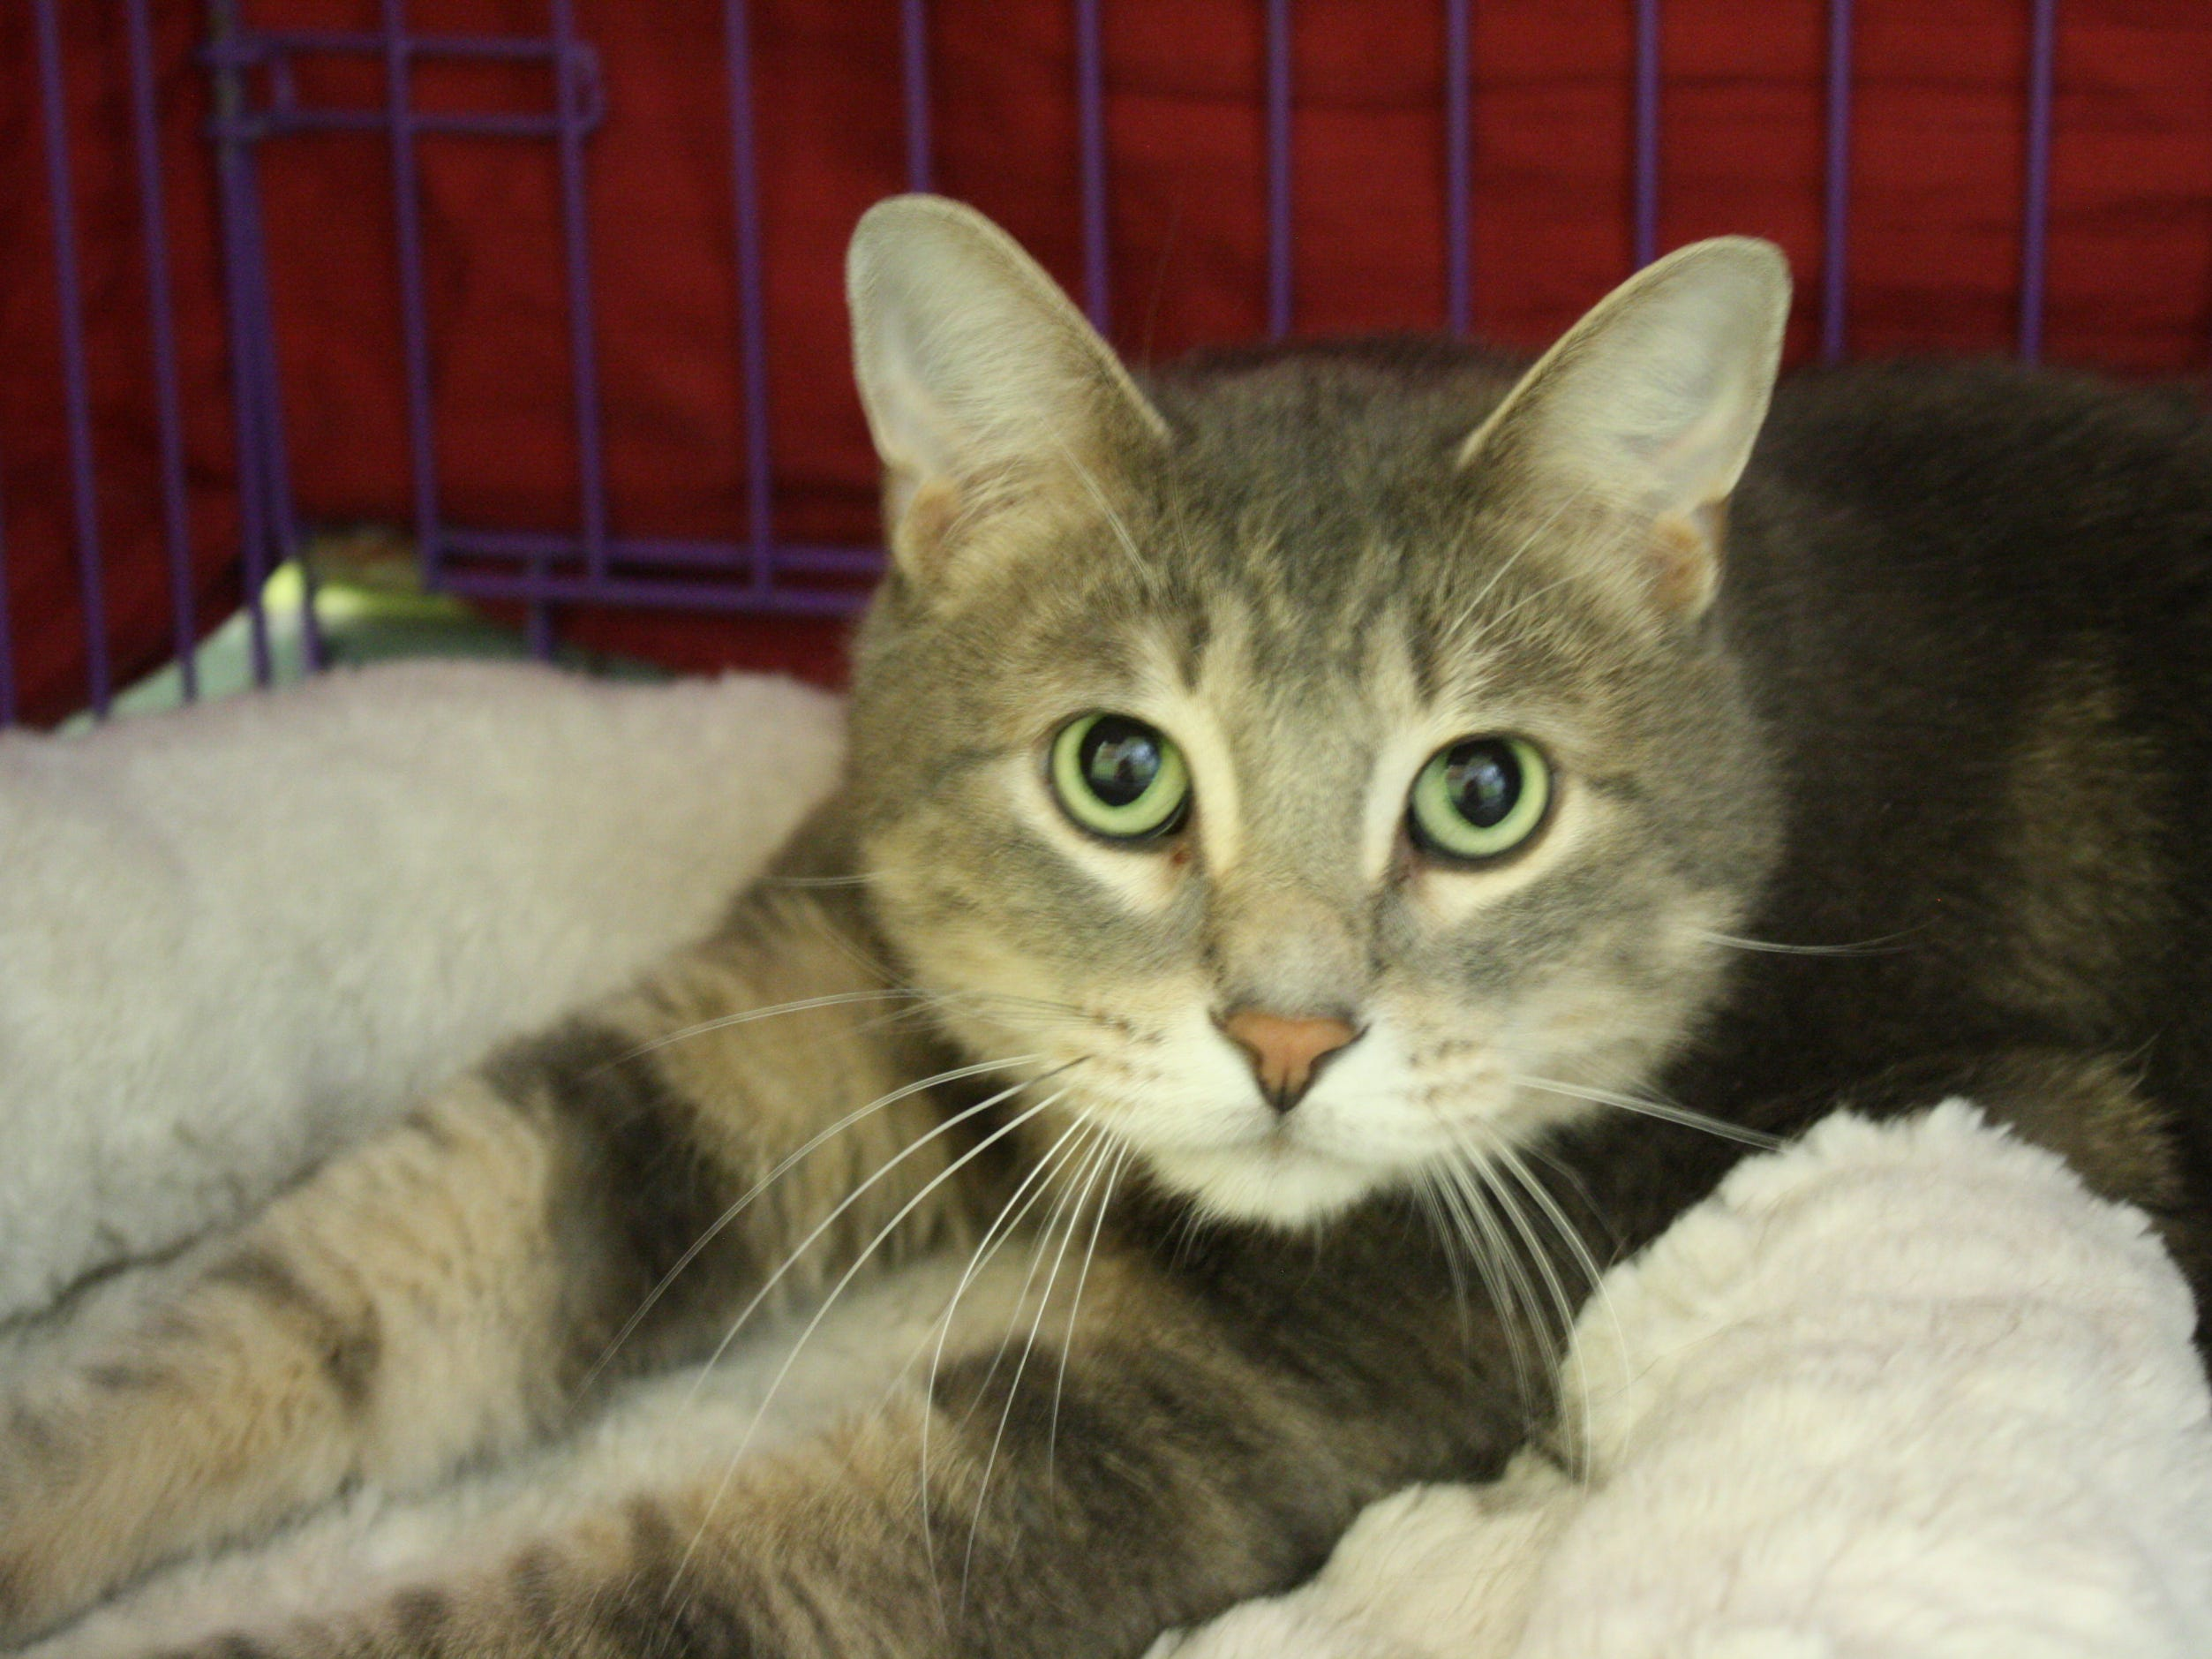 Oz, 4, is hoping to find a loving family and his forever home. He is neutered.